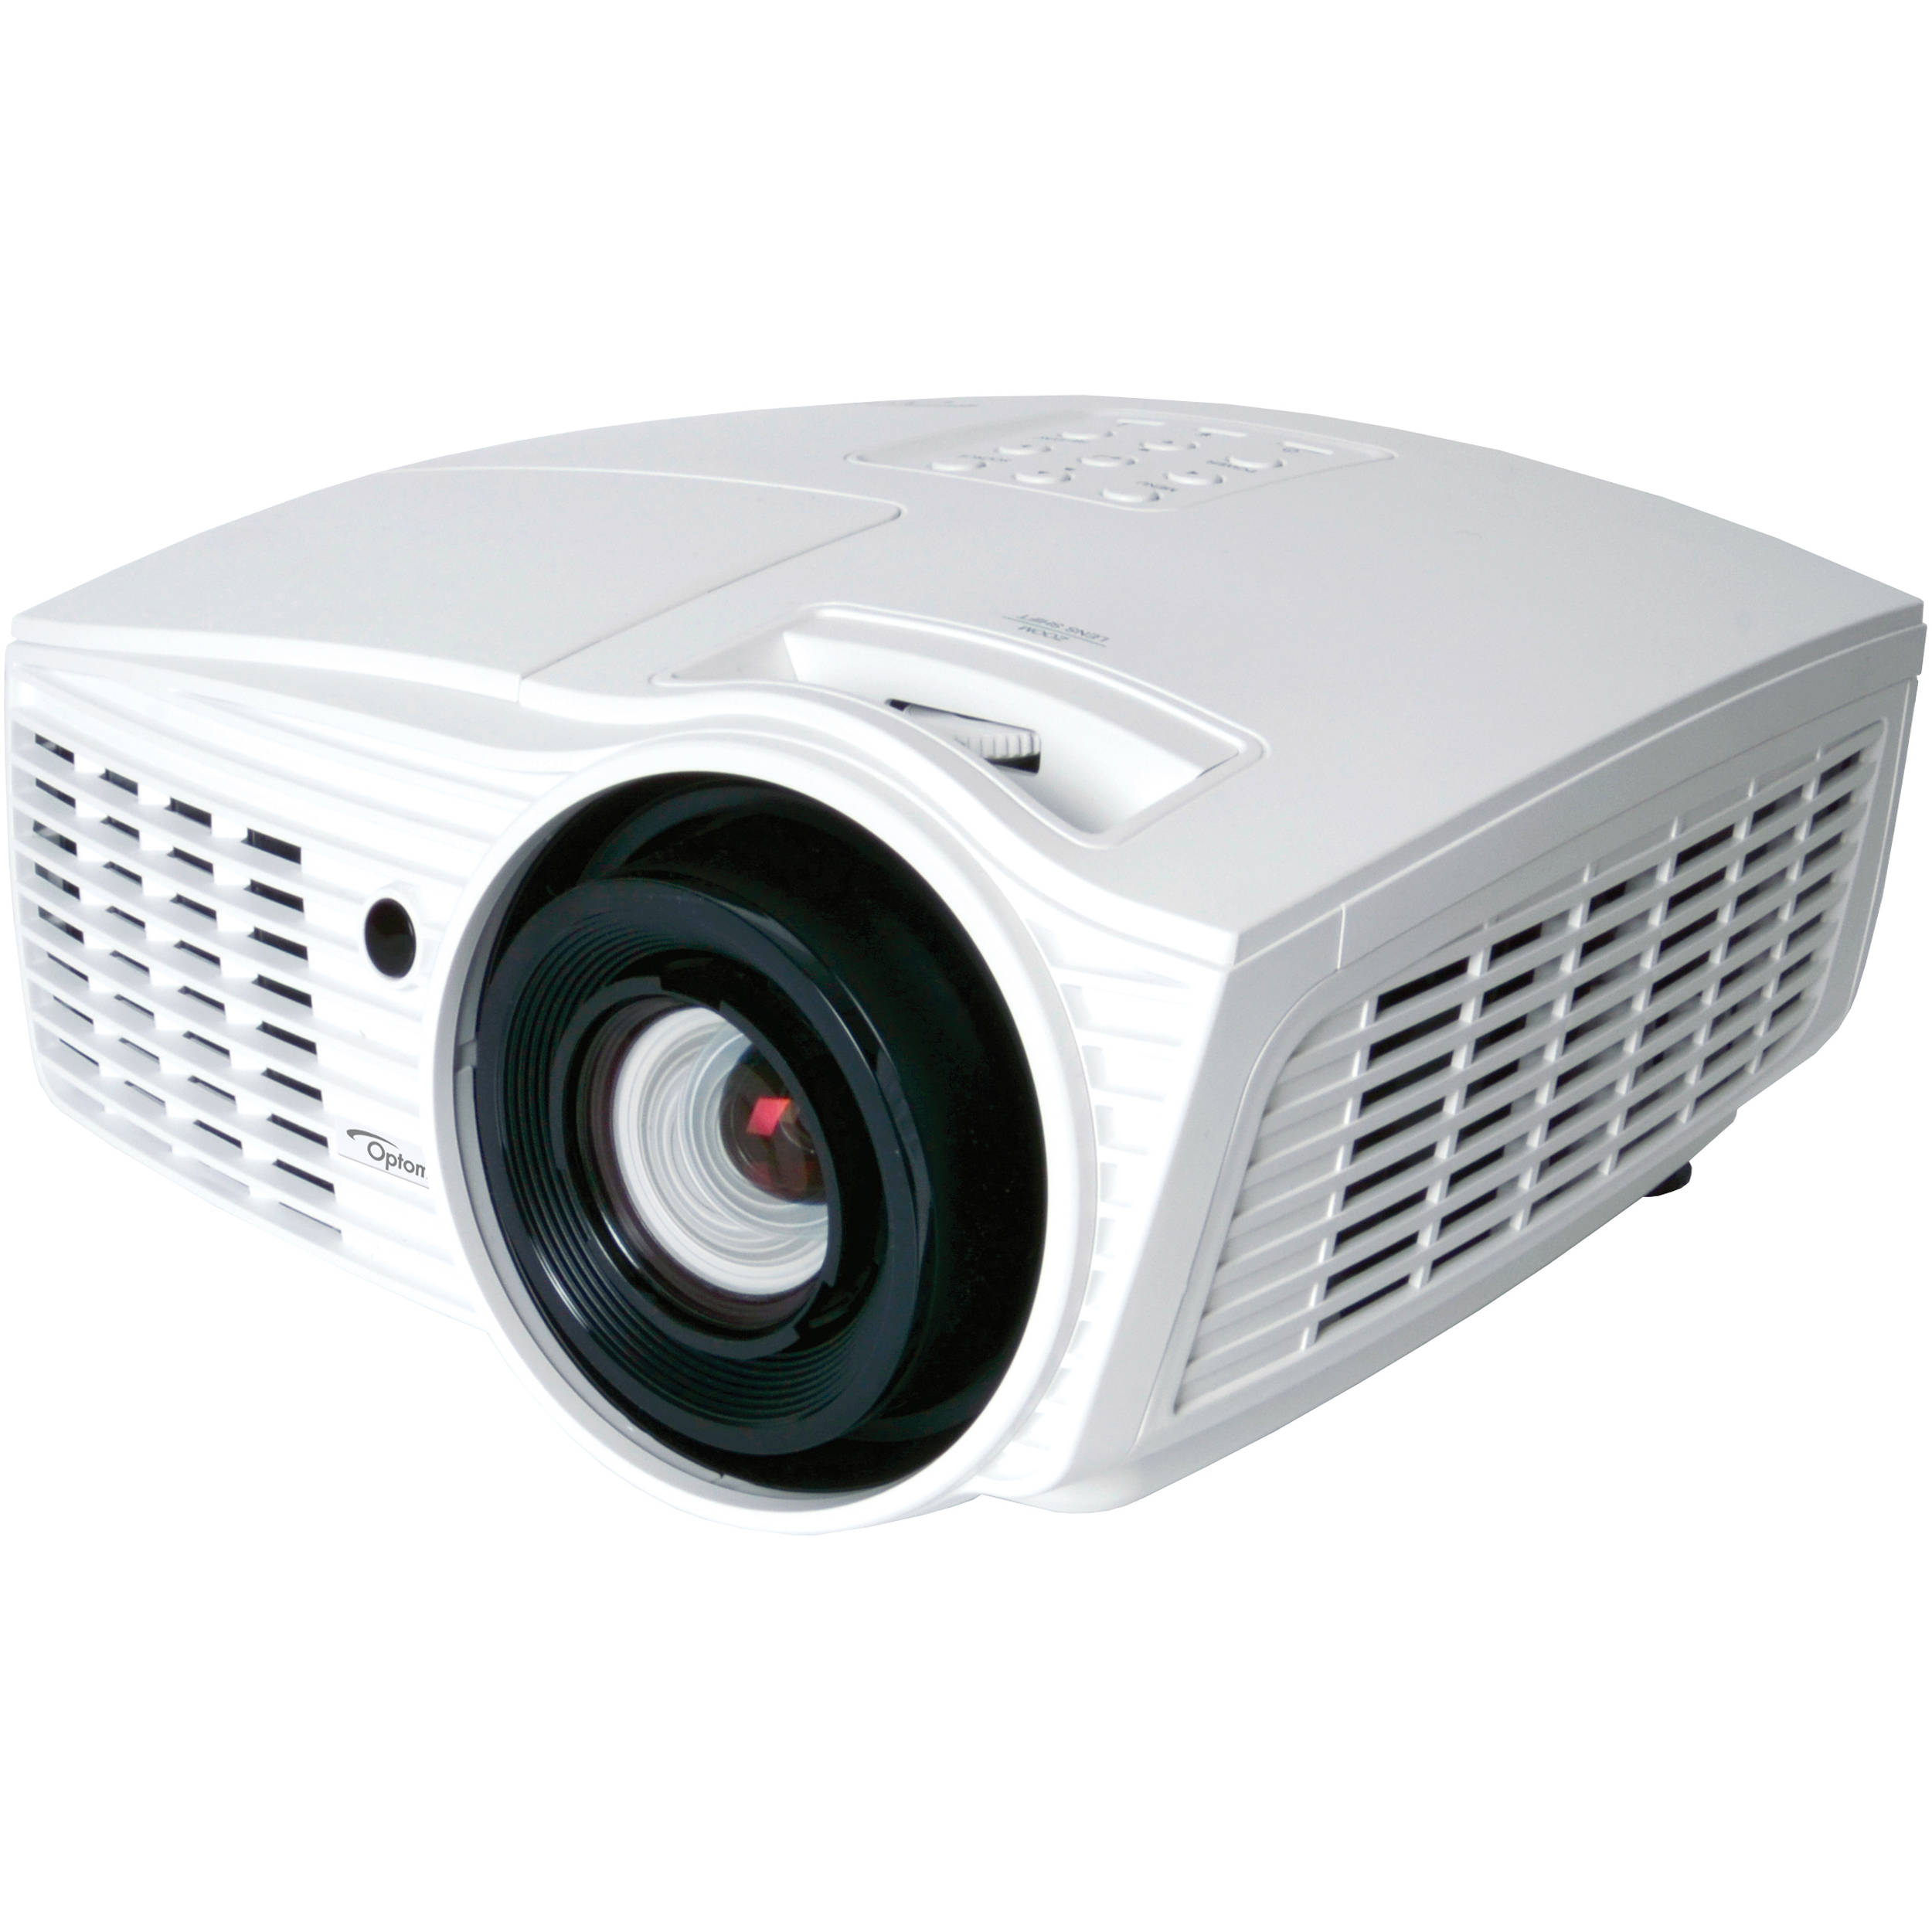 Optoma technology hd37 full hd 3d dlp home theater projector - Videoprojecteur full hd 3d ...